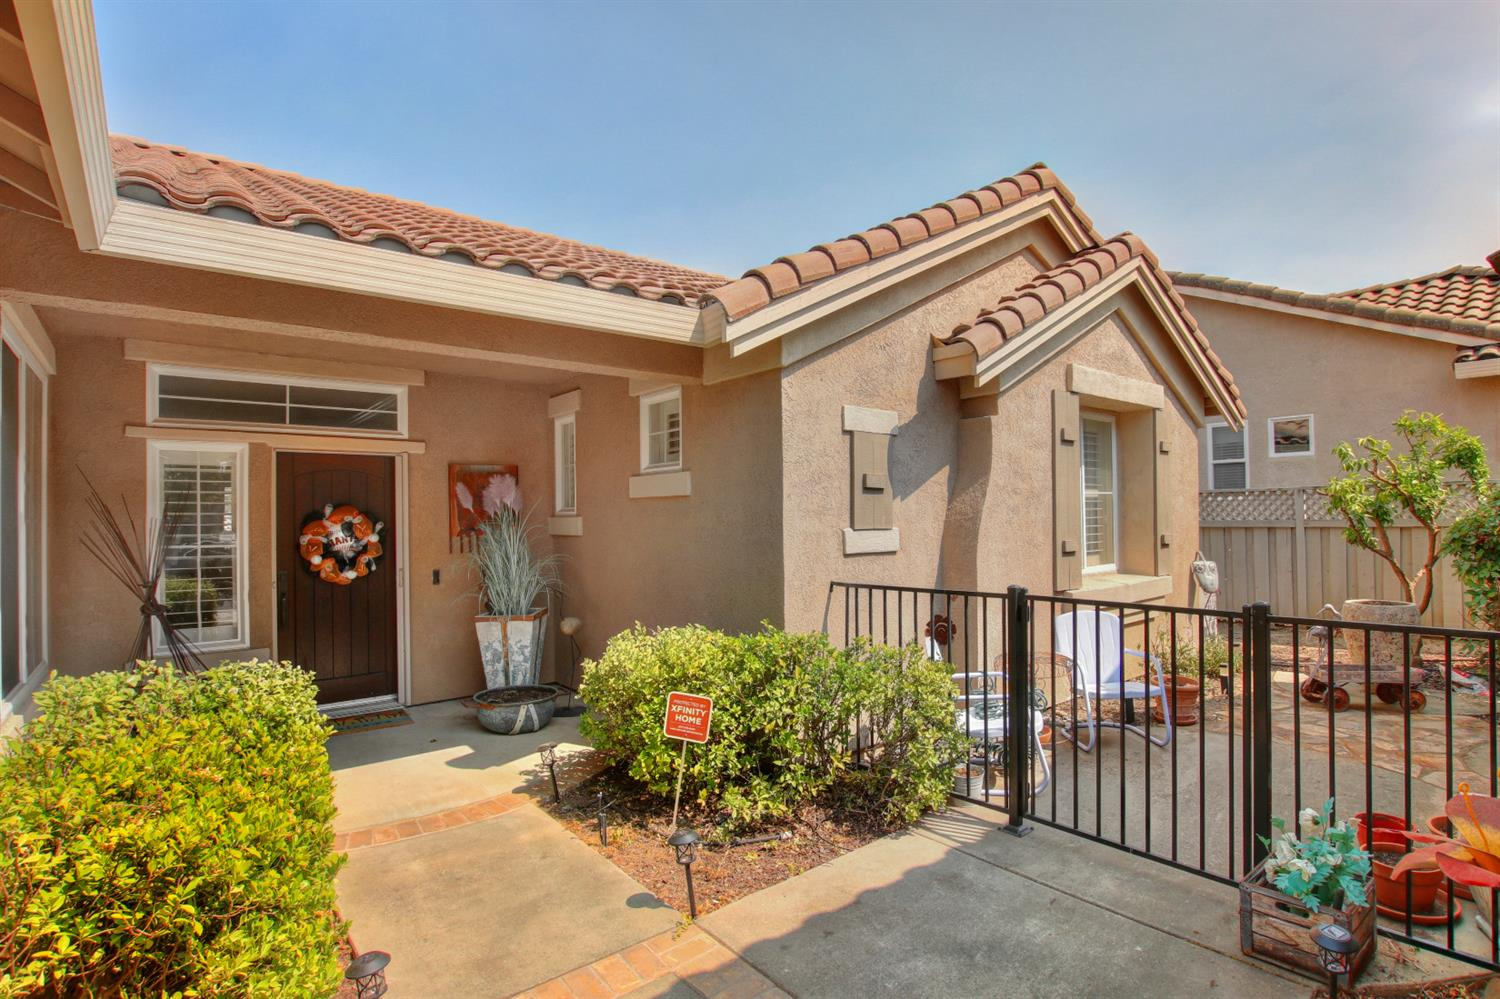 Photo 5 for Listing #221113915